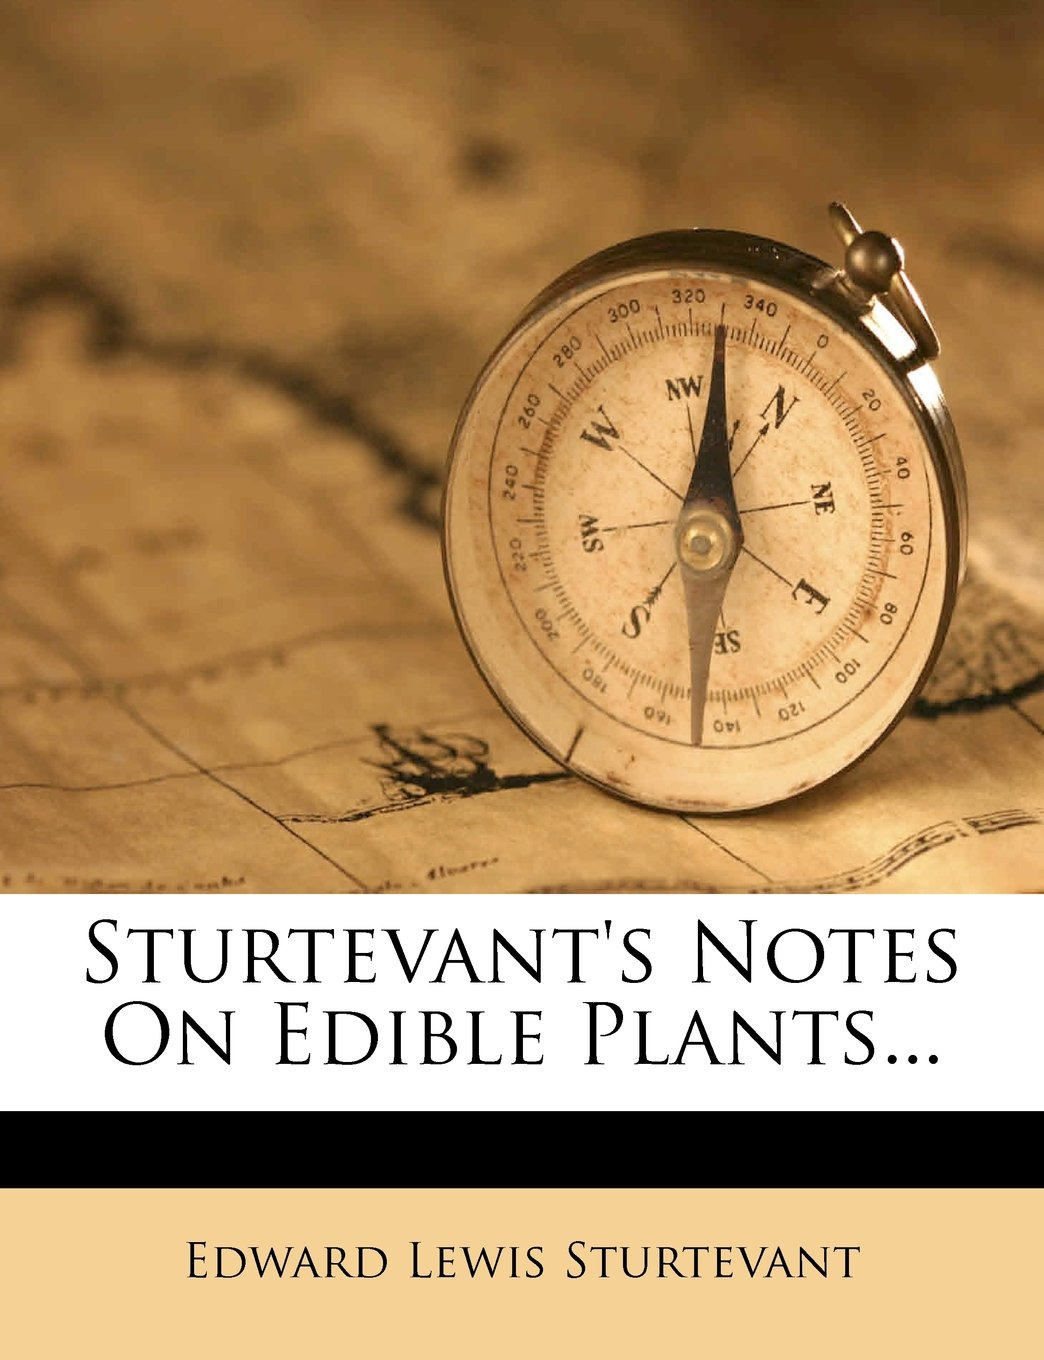 Sturtevant's Notes On Edible Plants... PDF ePub fb2 ebook